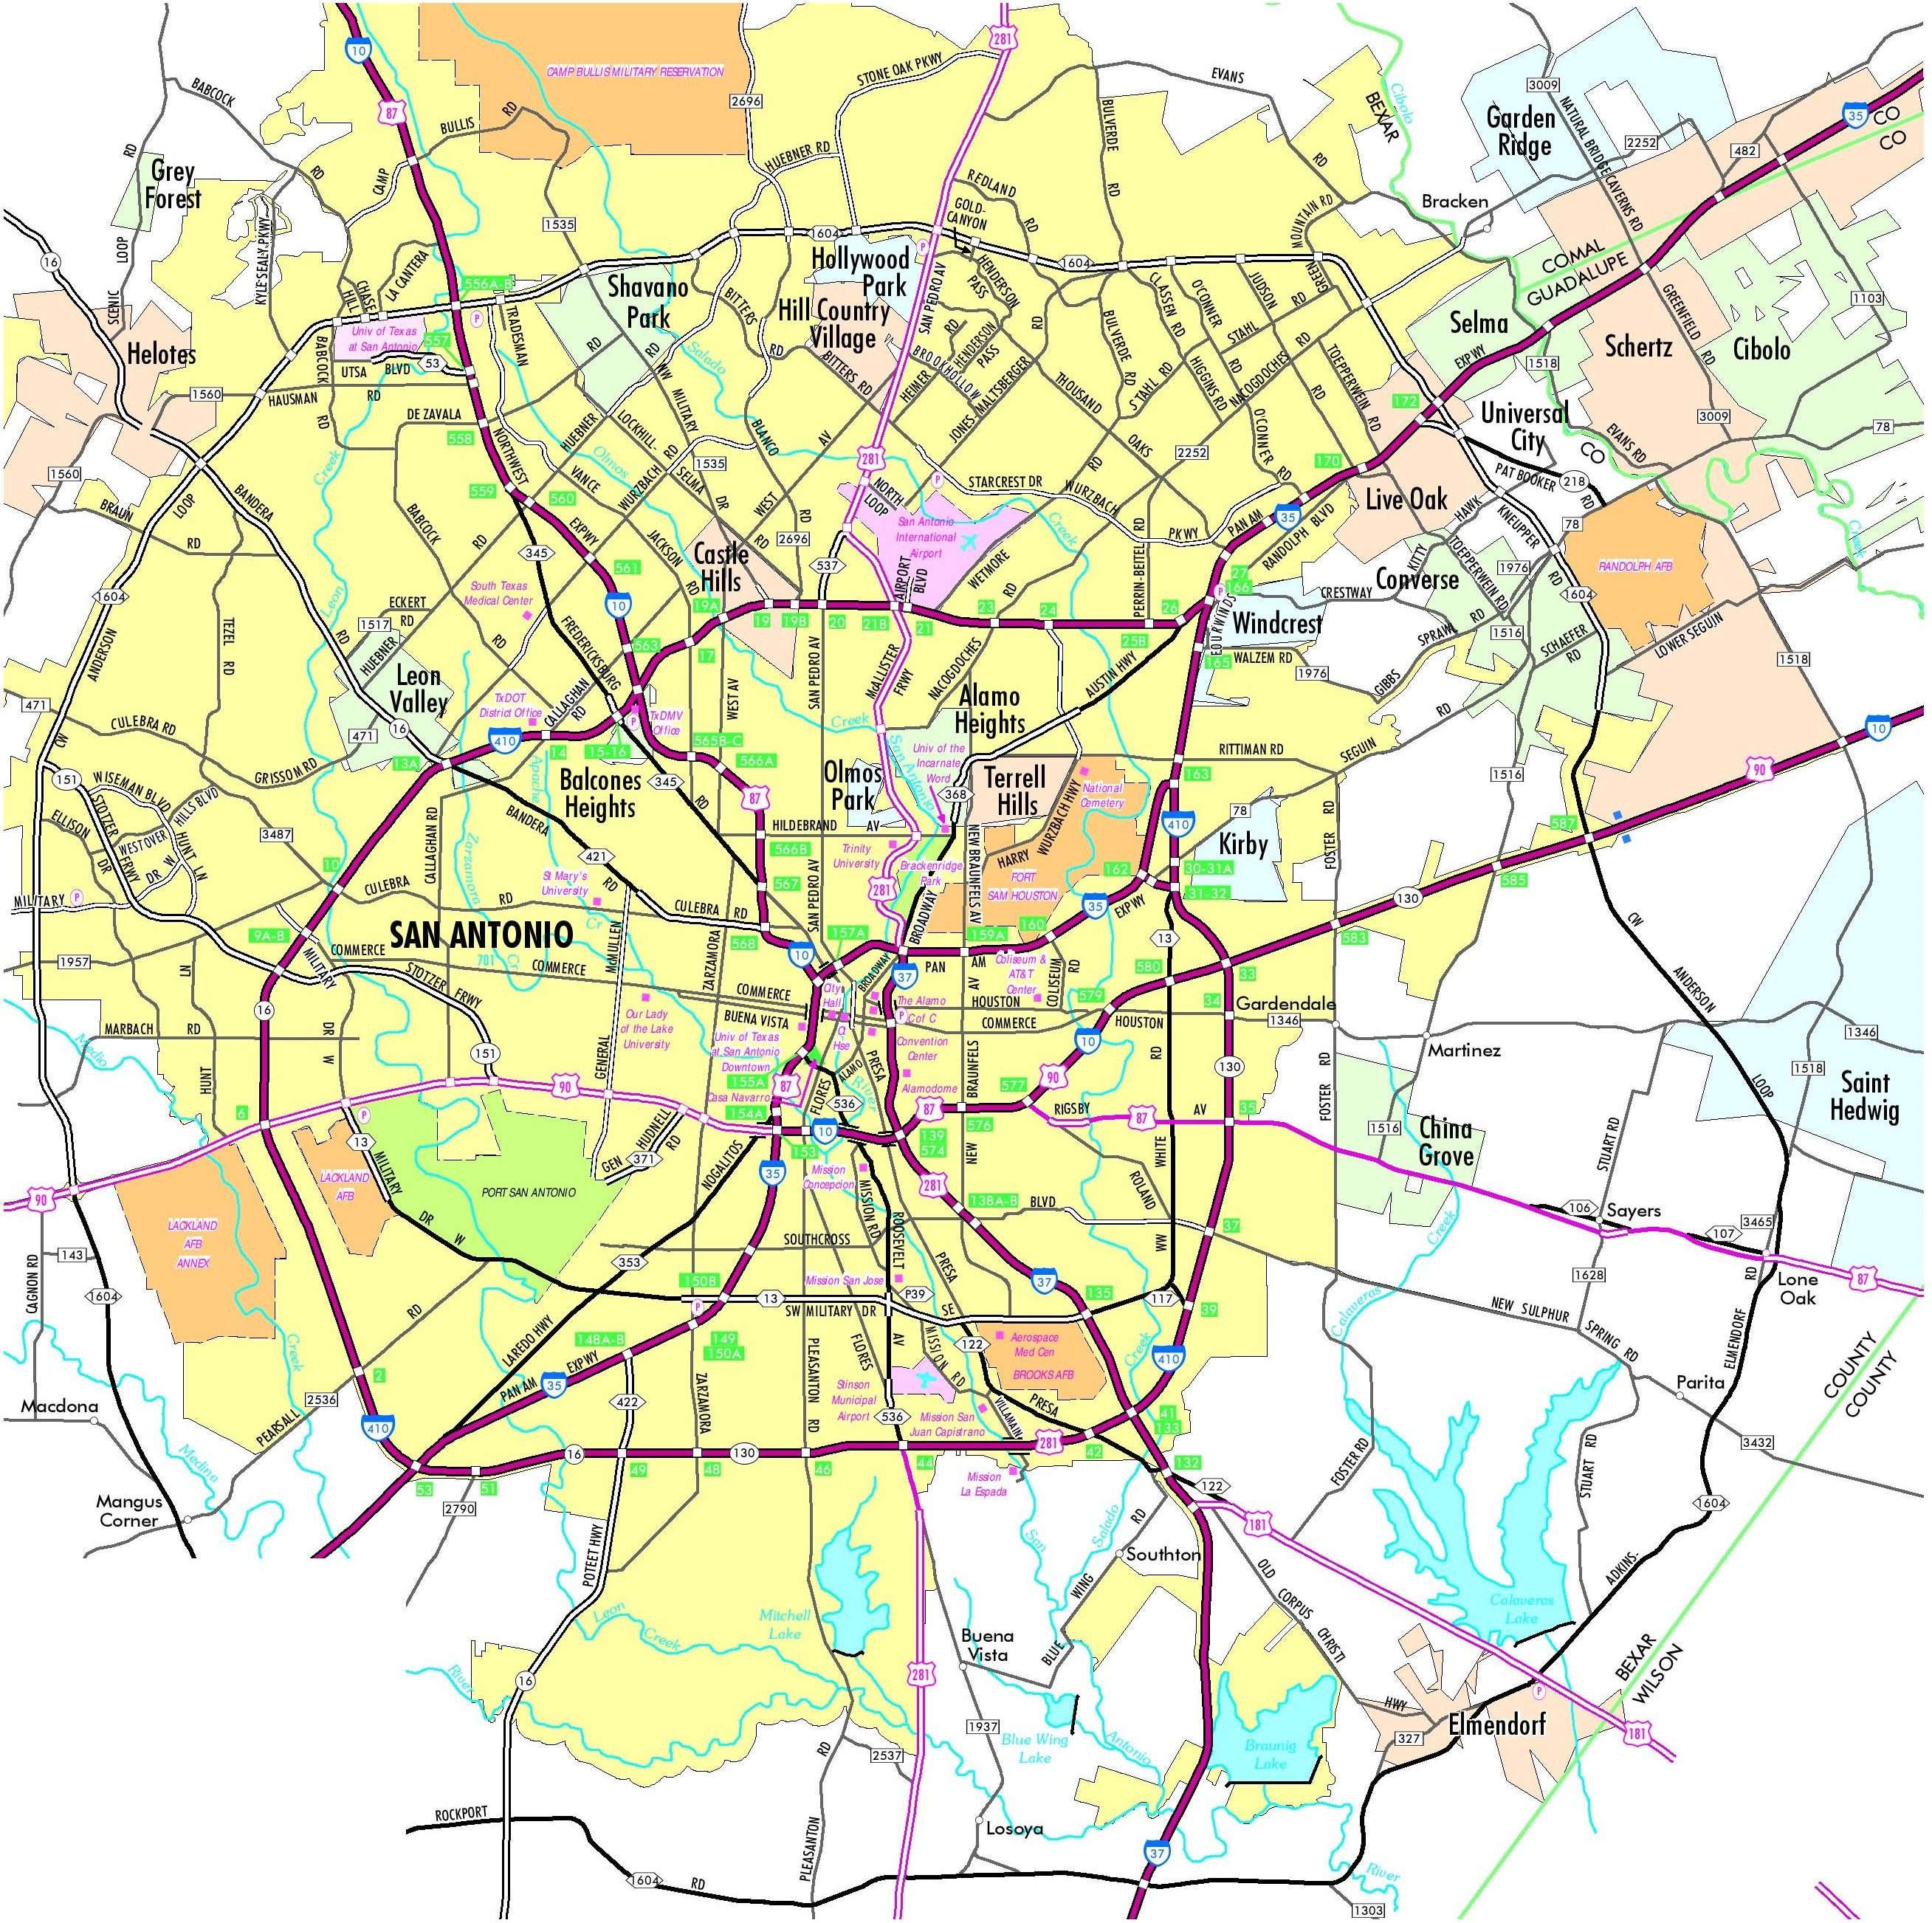 Map Of San Antonio Texas And Surrounding Area - San Antonio Tx Map - Map Of San Antonio Texas Area